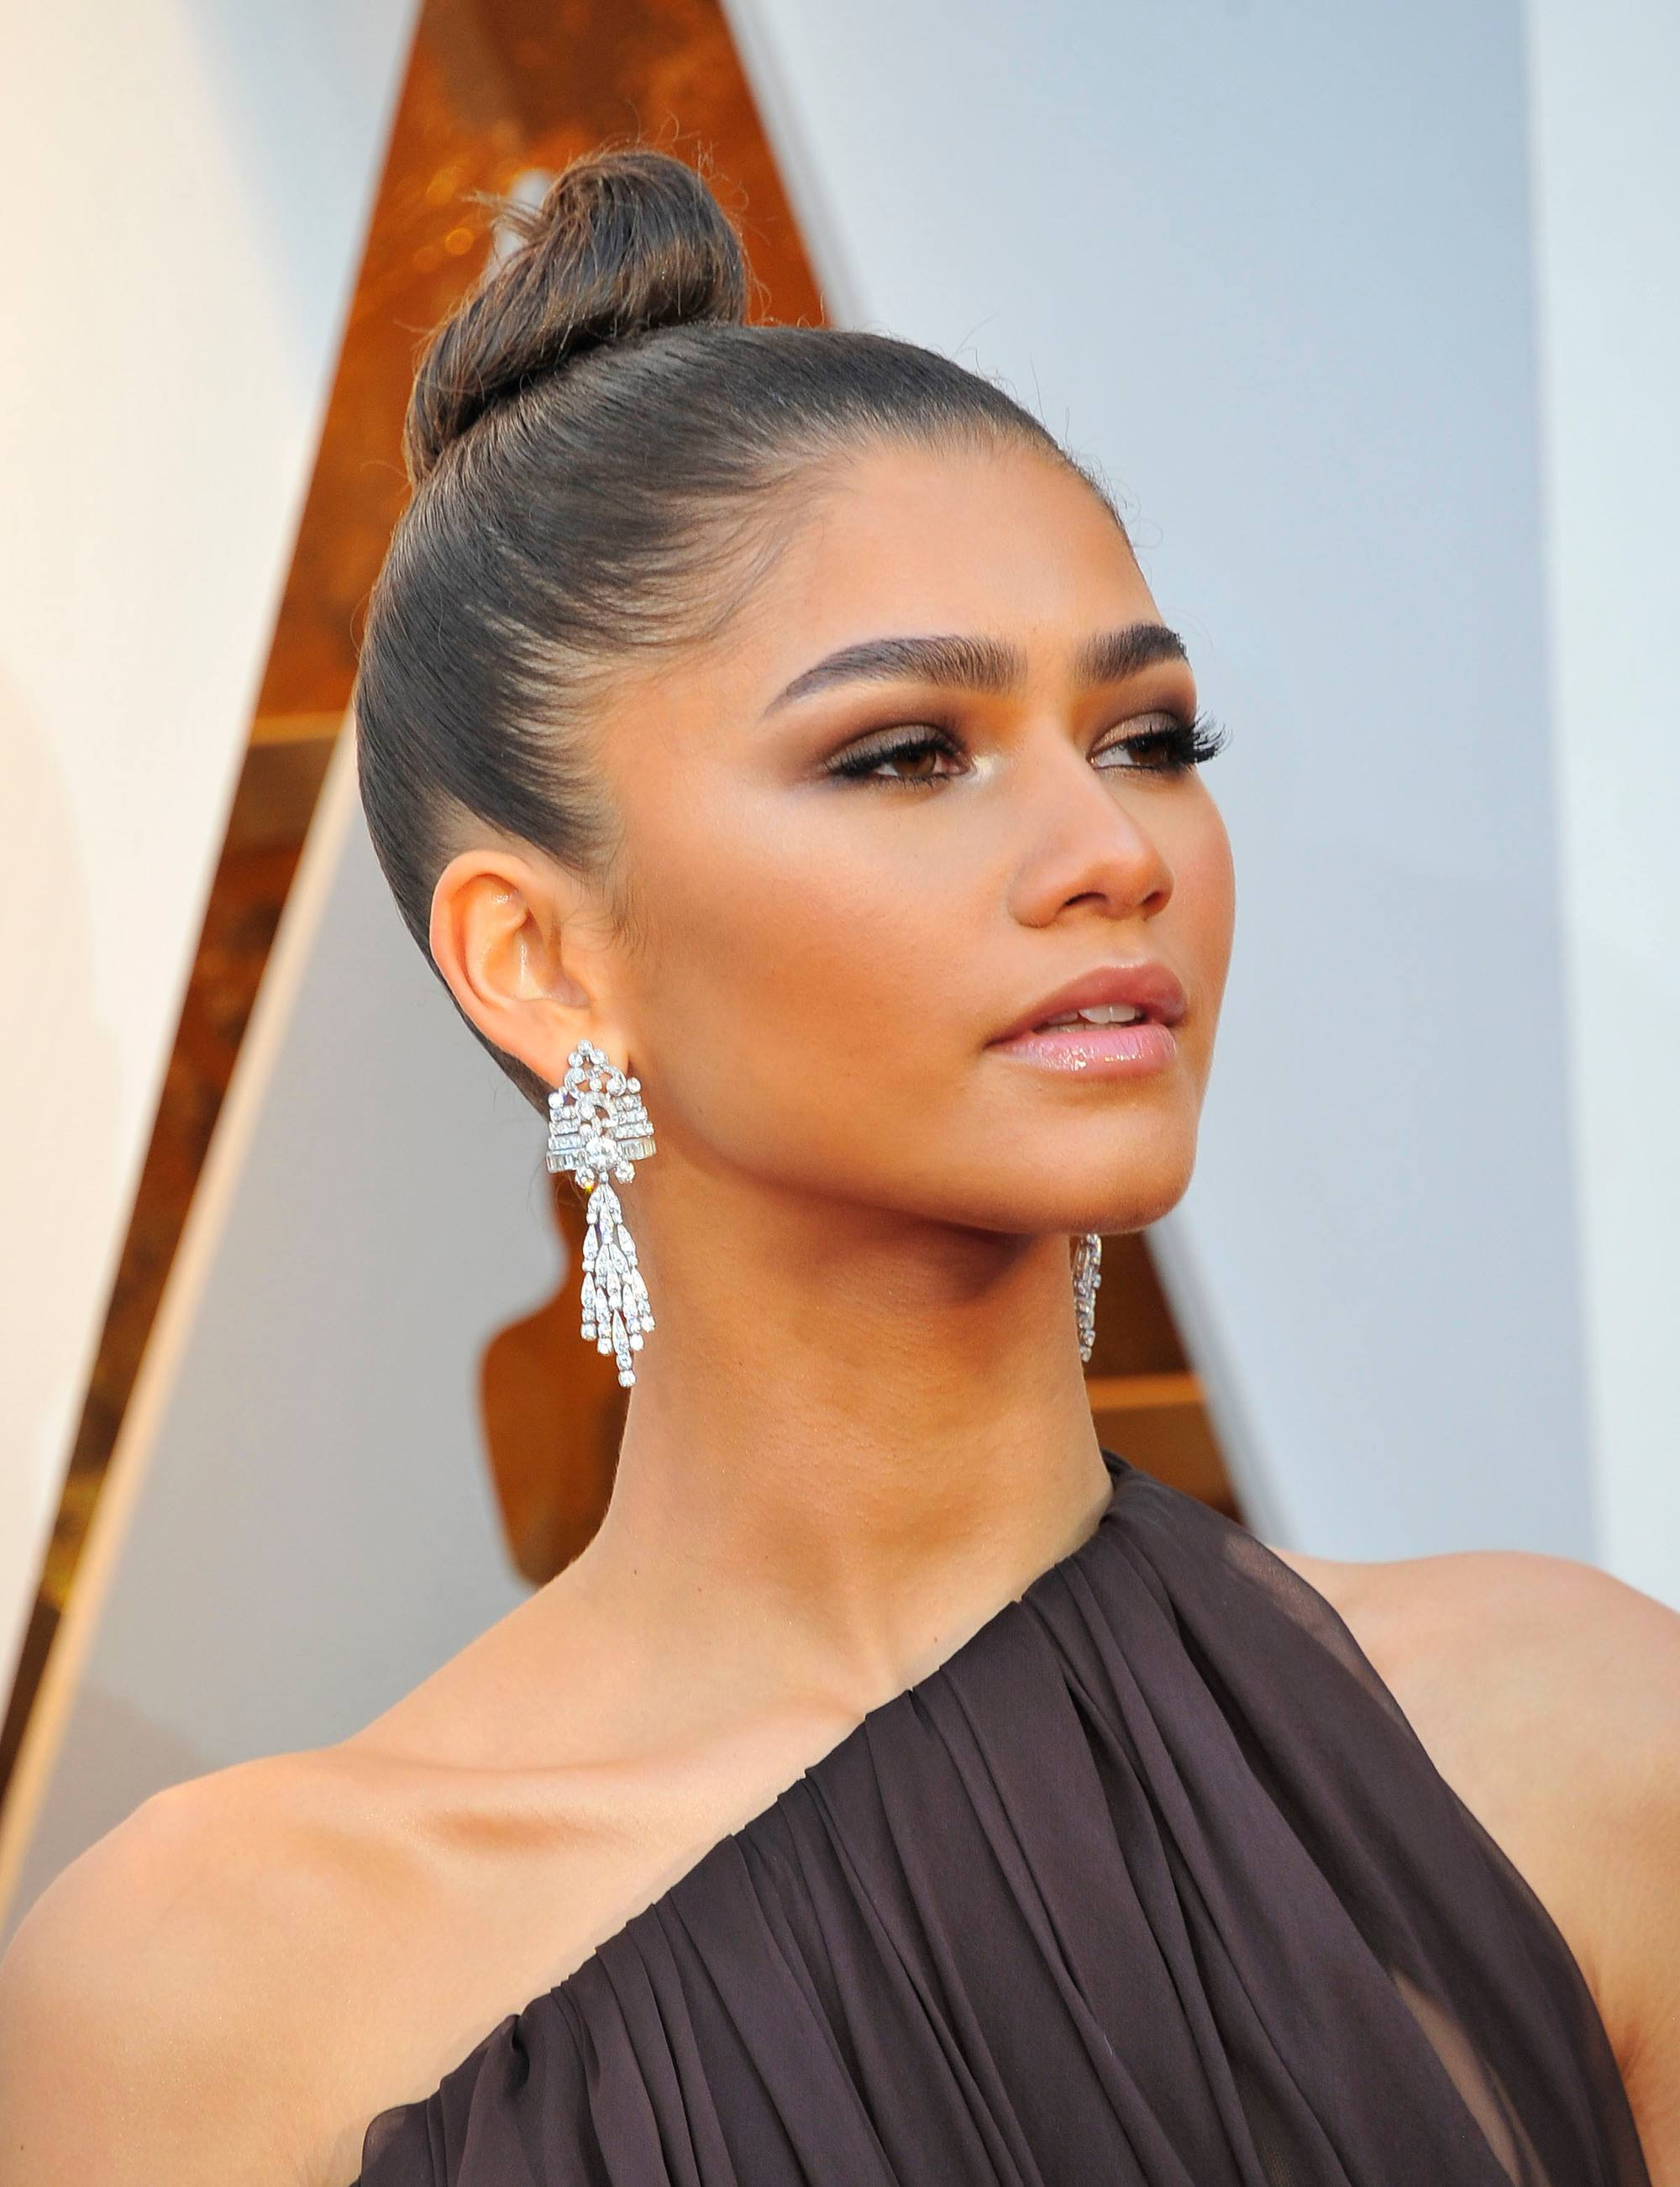 actress zendaya at the 2018 oscars wearing a one shoulder dress with her hair in a slick top knot